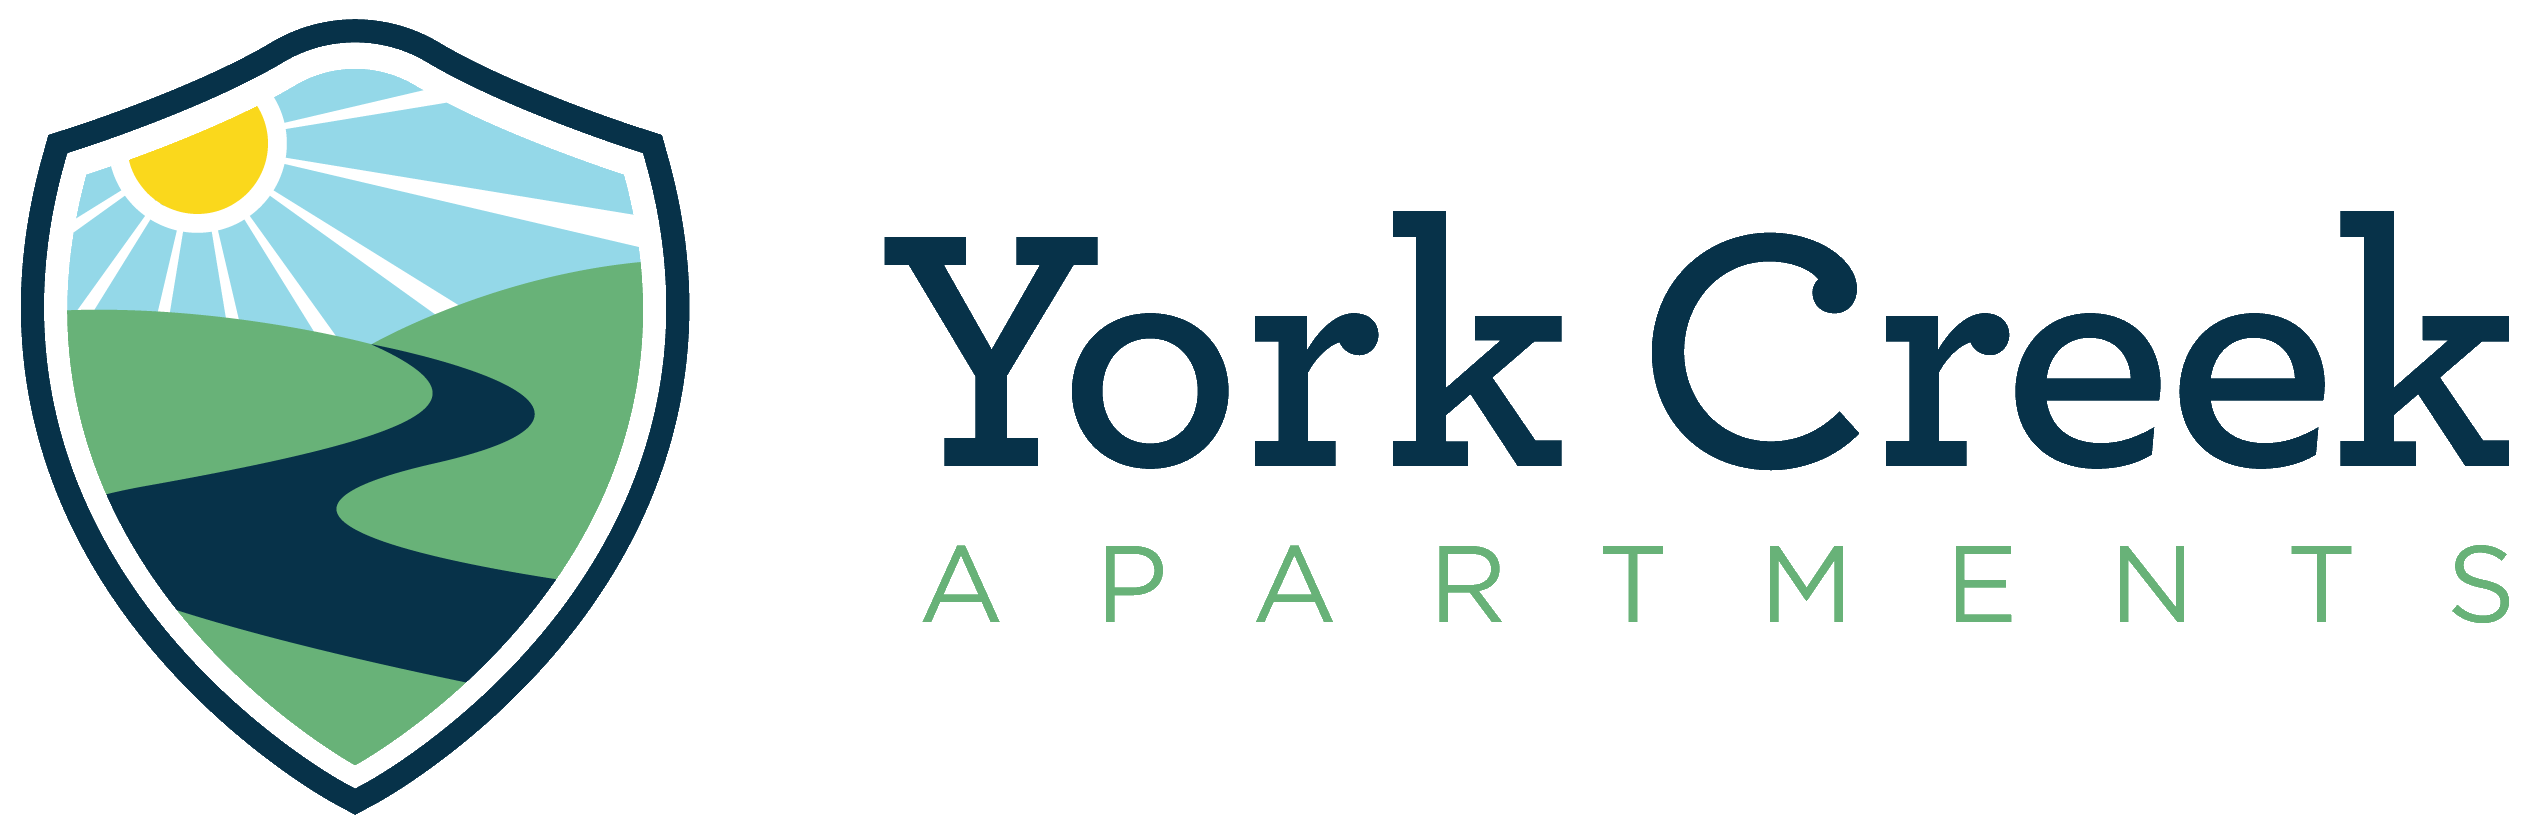 York Creek Apartments